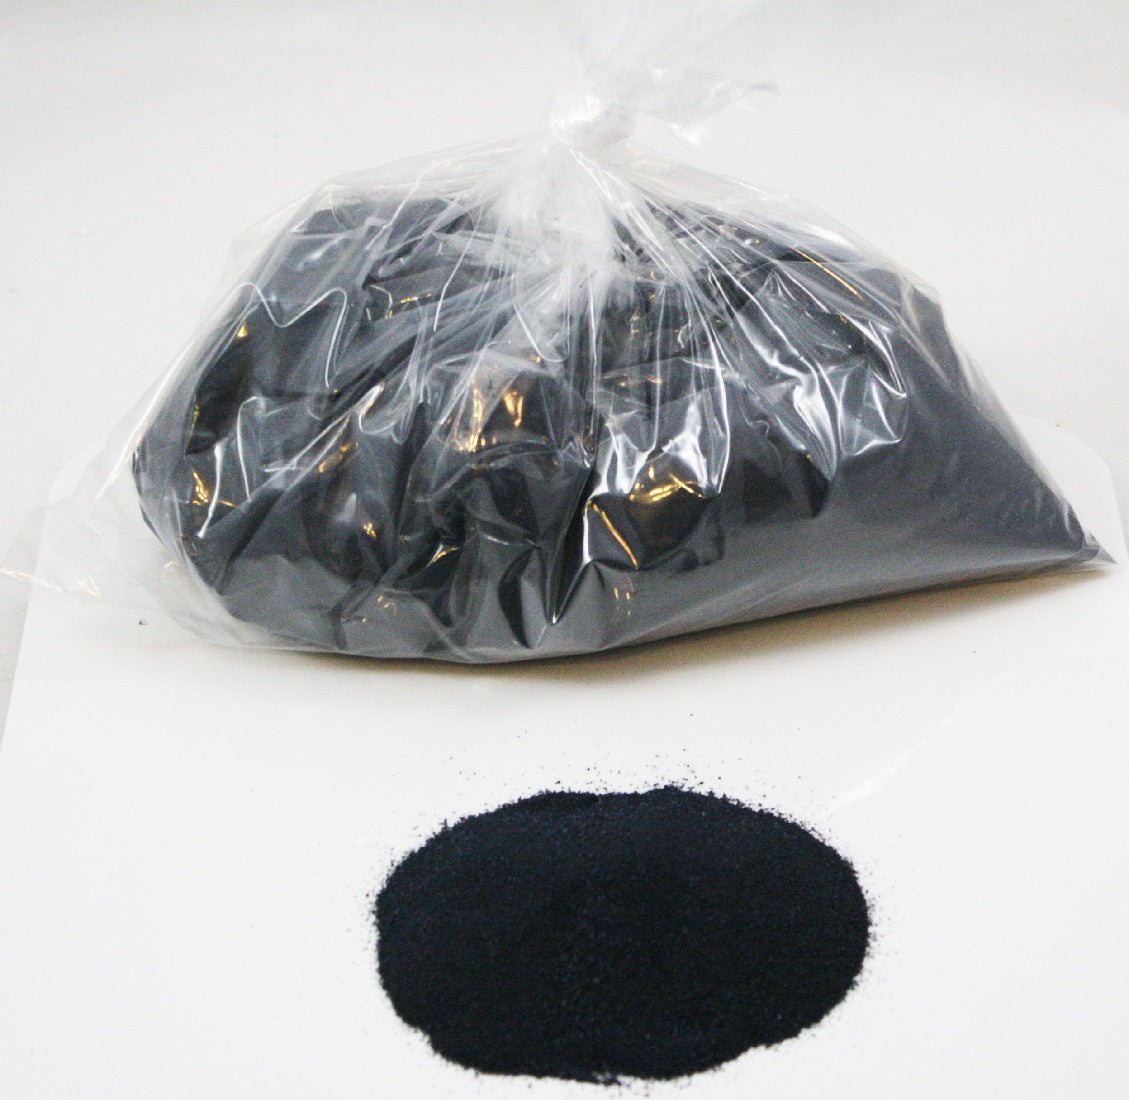 Black Space Sand: 5lbs of Bulk Hydrophobic Sand - Off The Wall Toys and Gifts